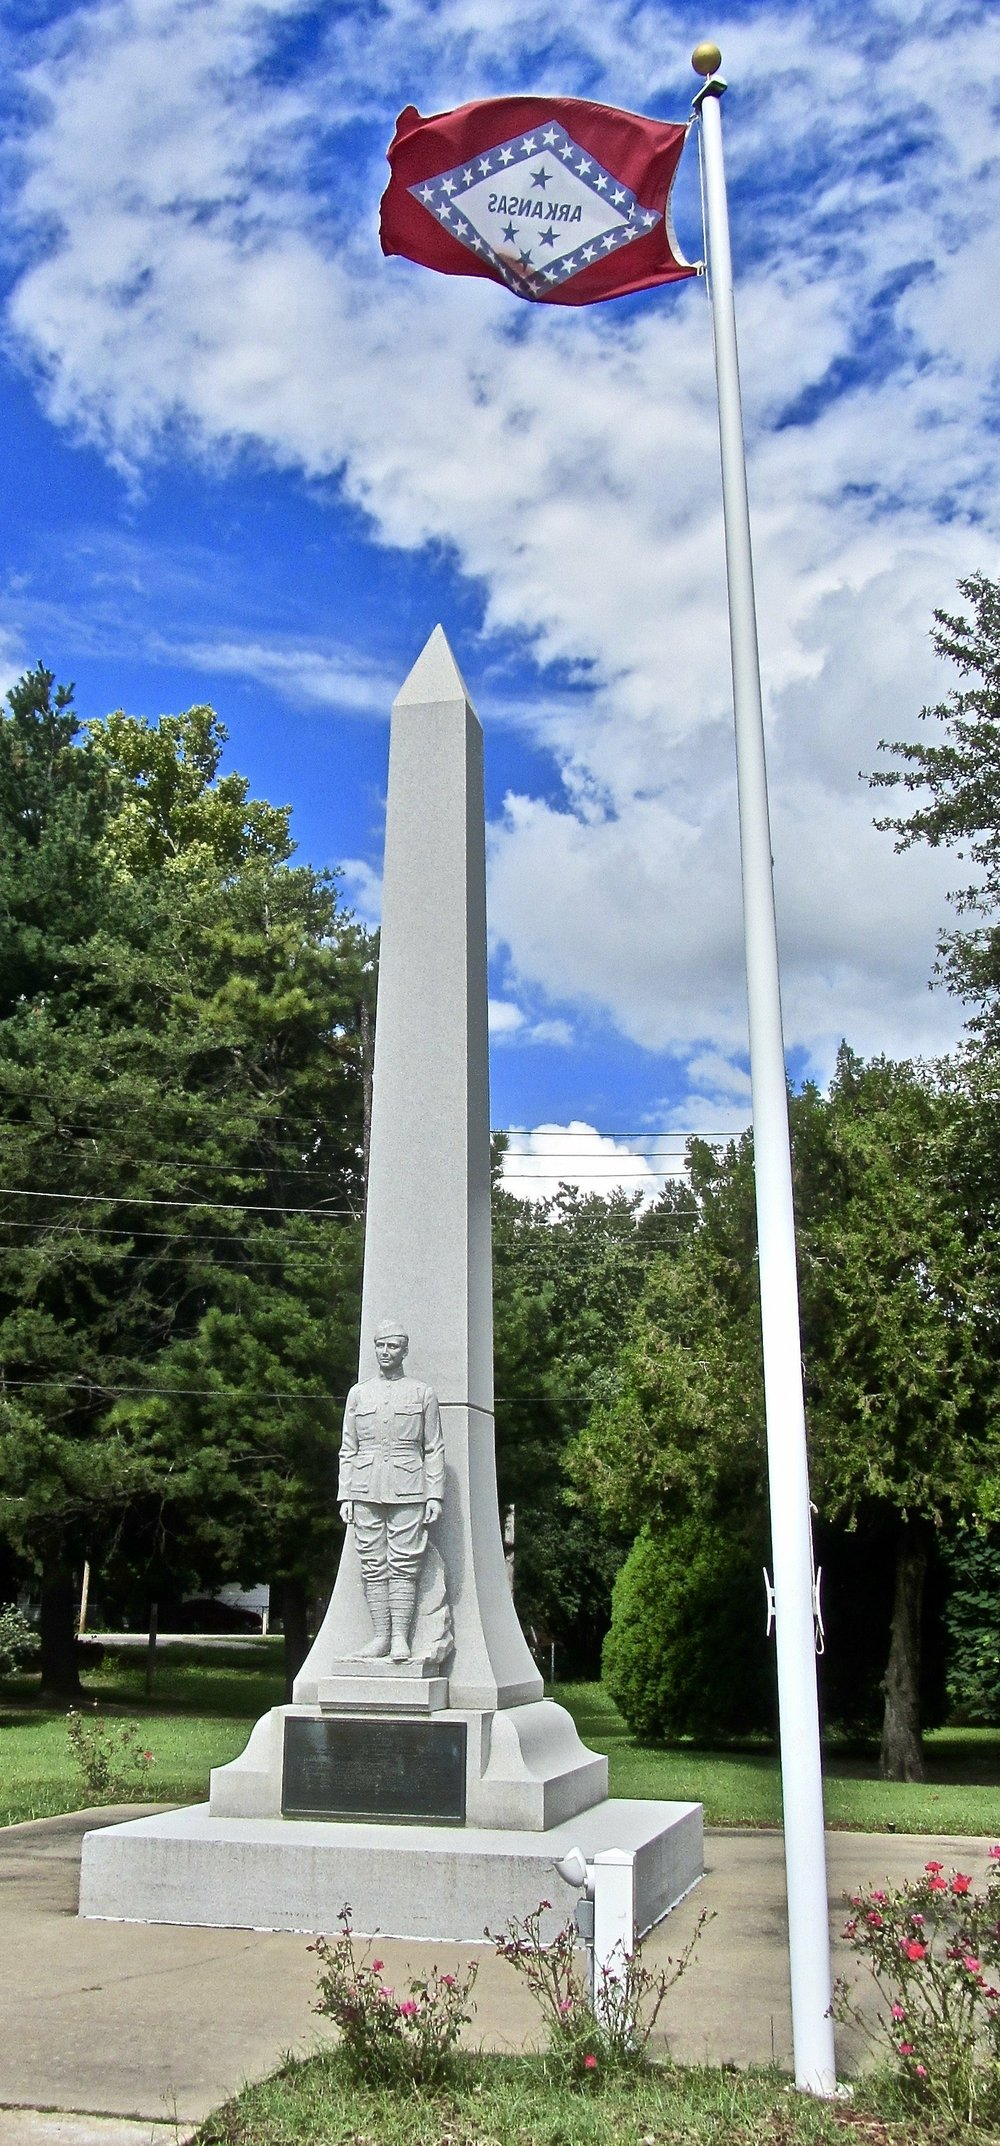 Manila, named after the Philippines capital, is the site of Arkansas smallest state park, dedicated to World War I honoree Herman Davis.  (Special to the Democrat-Gazette/Marcia Schnedler)